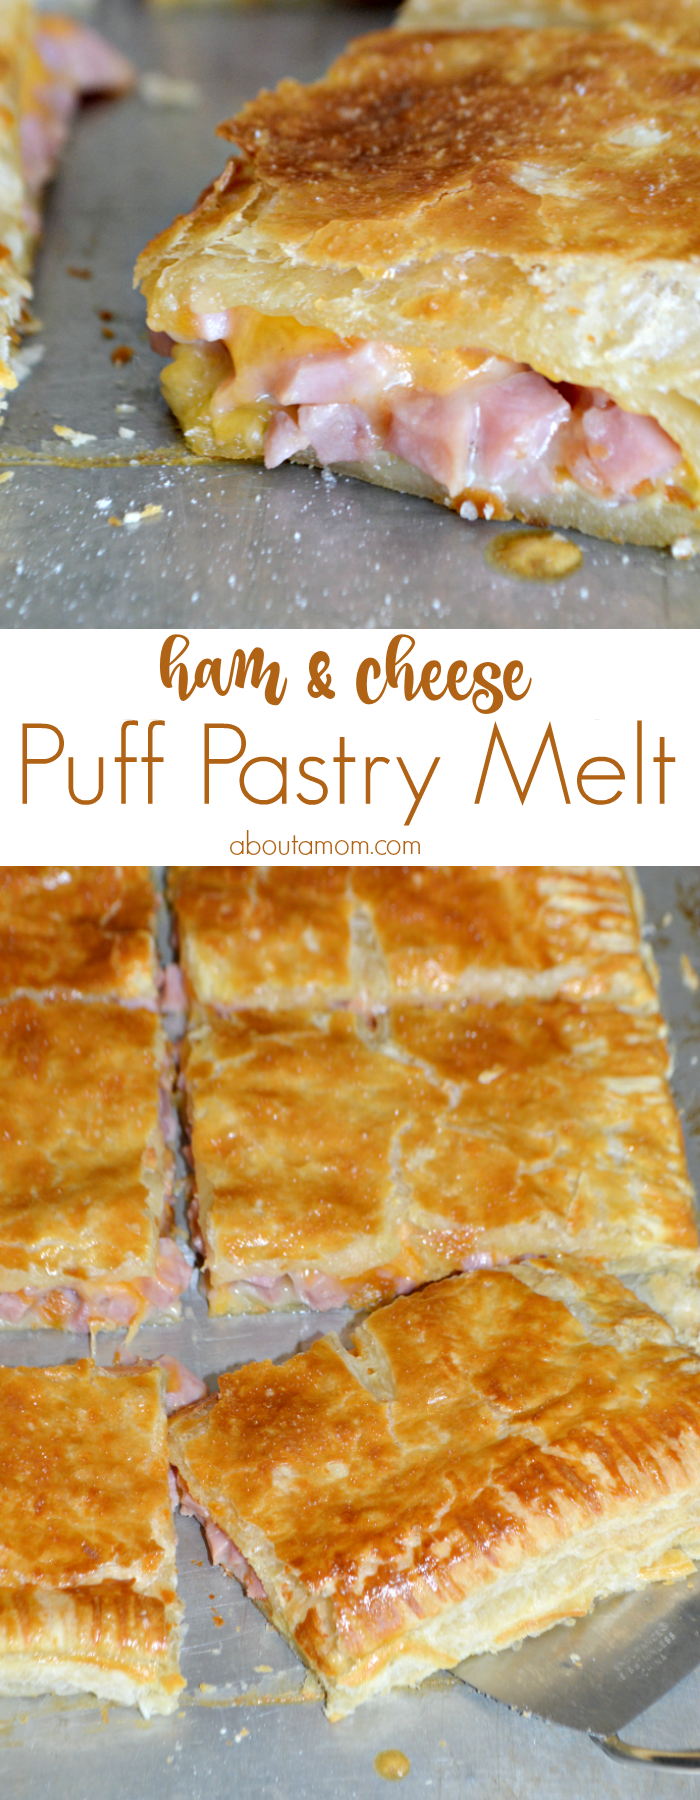 Ham and Cheese Puff Pastry Melt - About a Mom